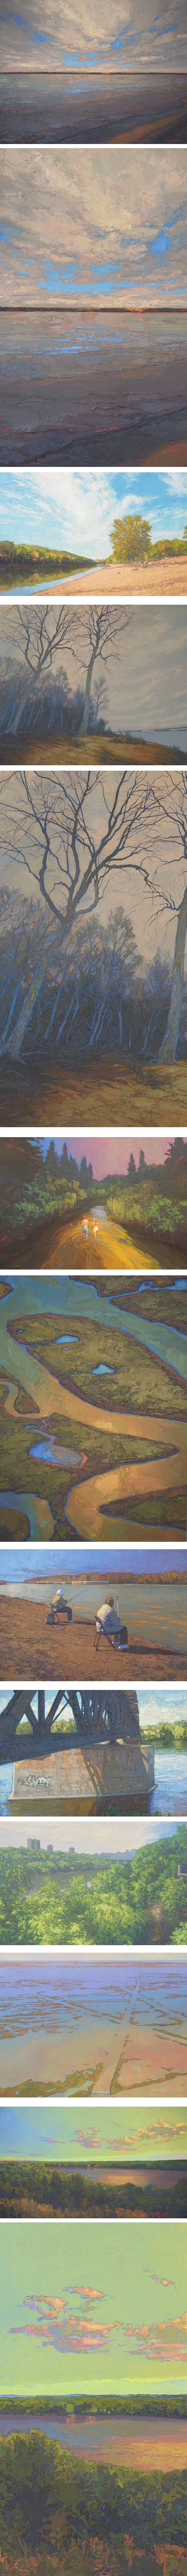 Thomas Paquette – Americas River Re-Explored, paintings of the Mississippi River